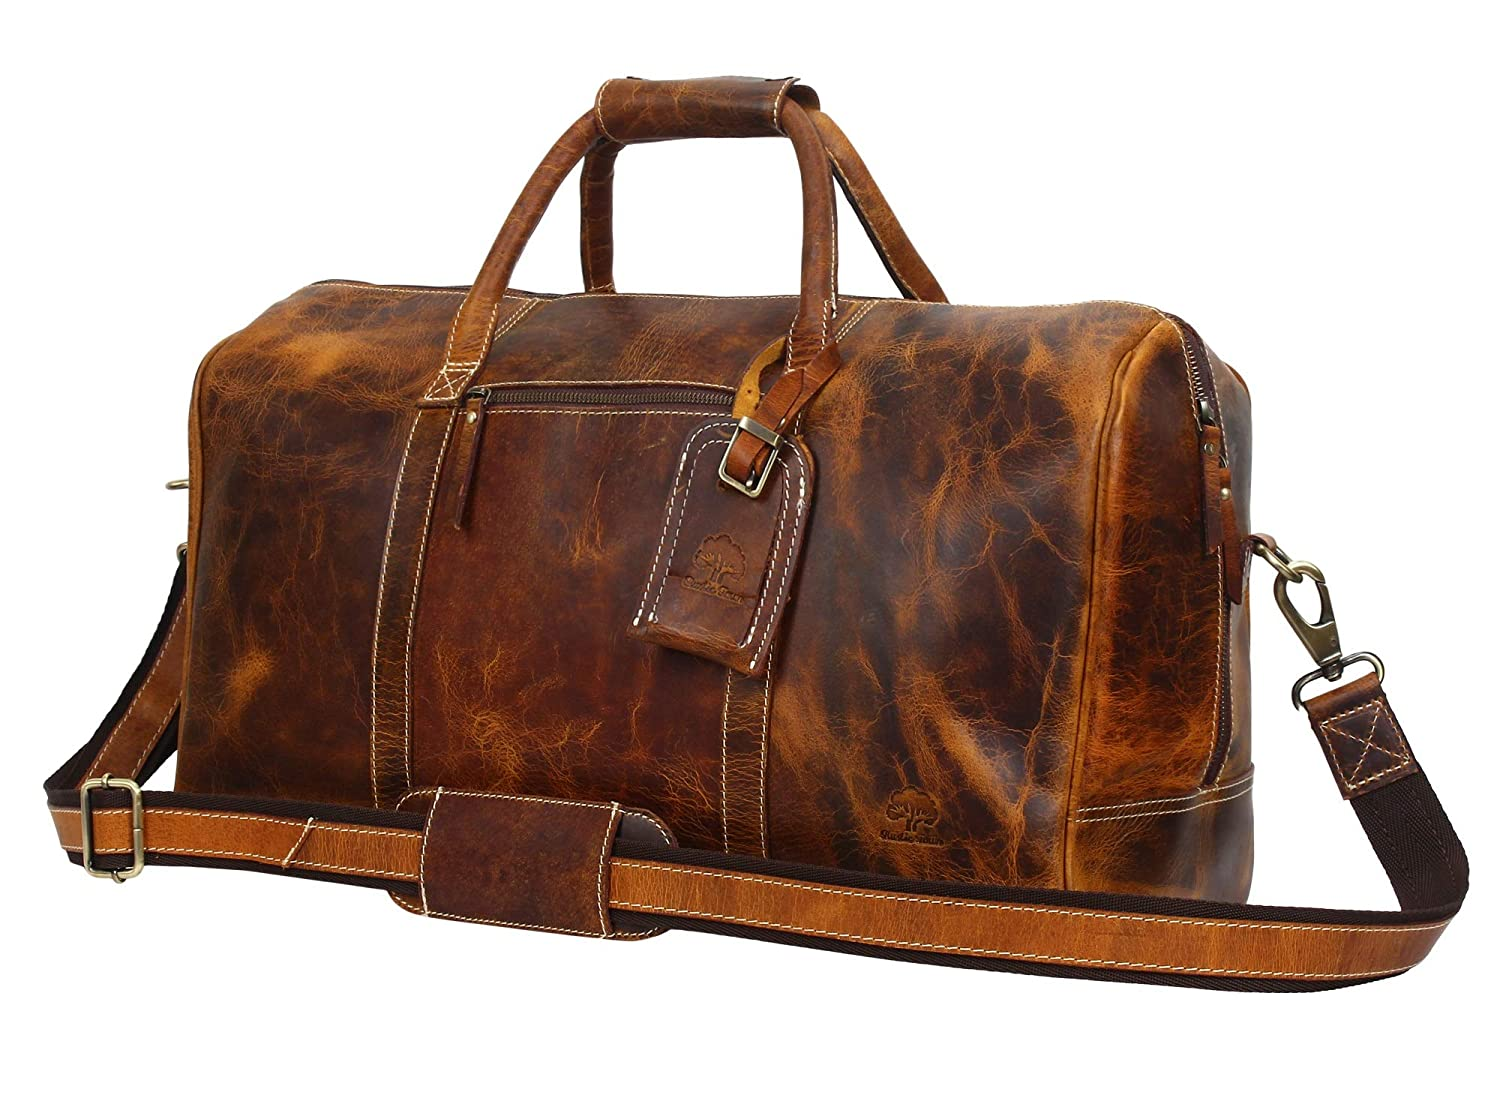 31e333631064 Amazon.com  Leather Travel Duffel Bag - Airplane Underseat Carry On Bags By  Rustic Town (Brown)  Clothing